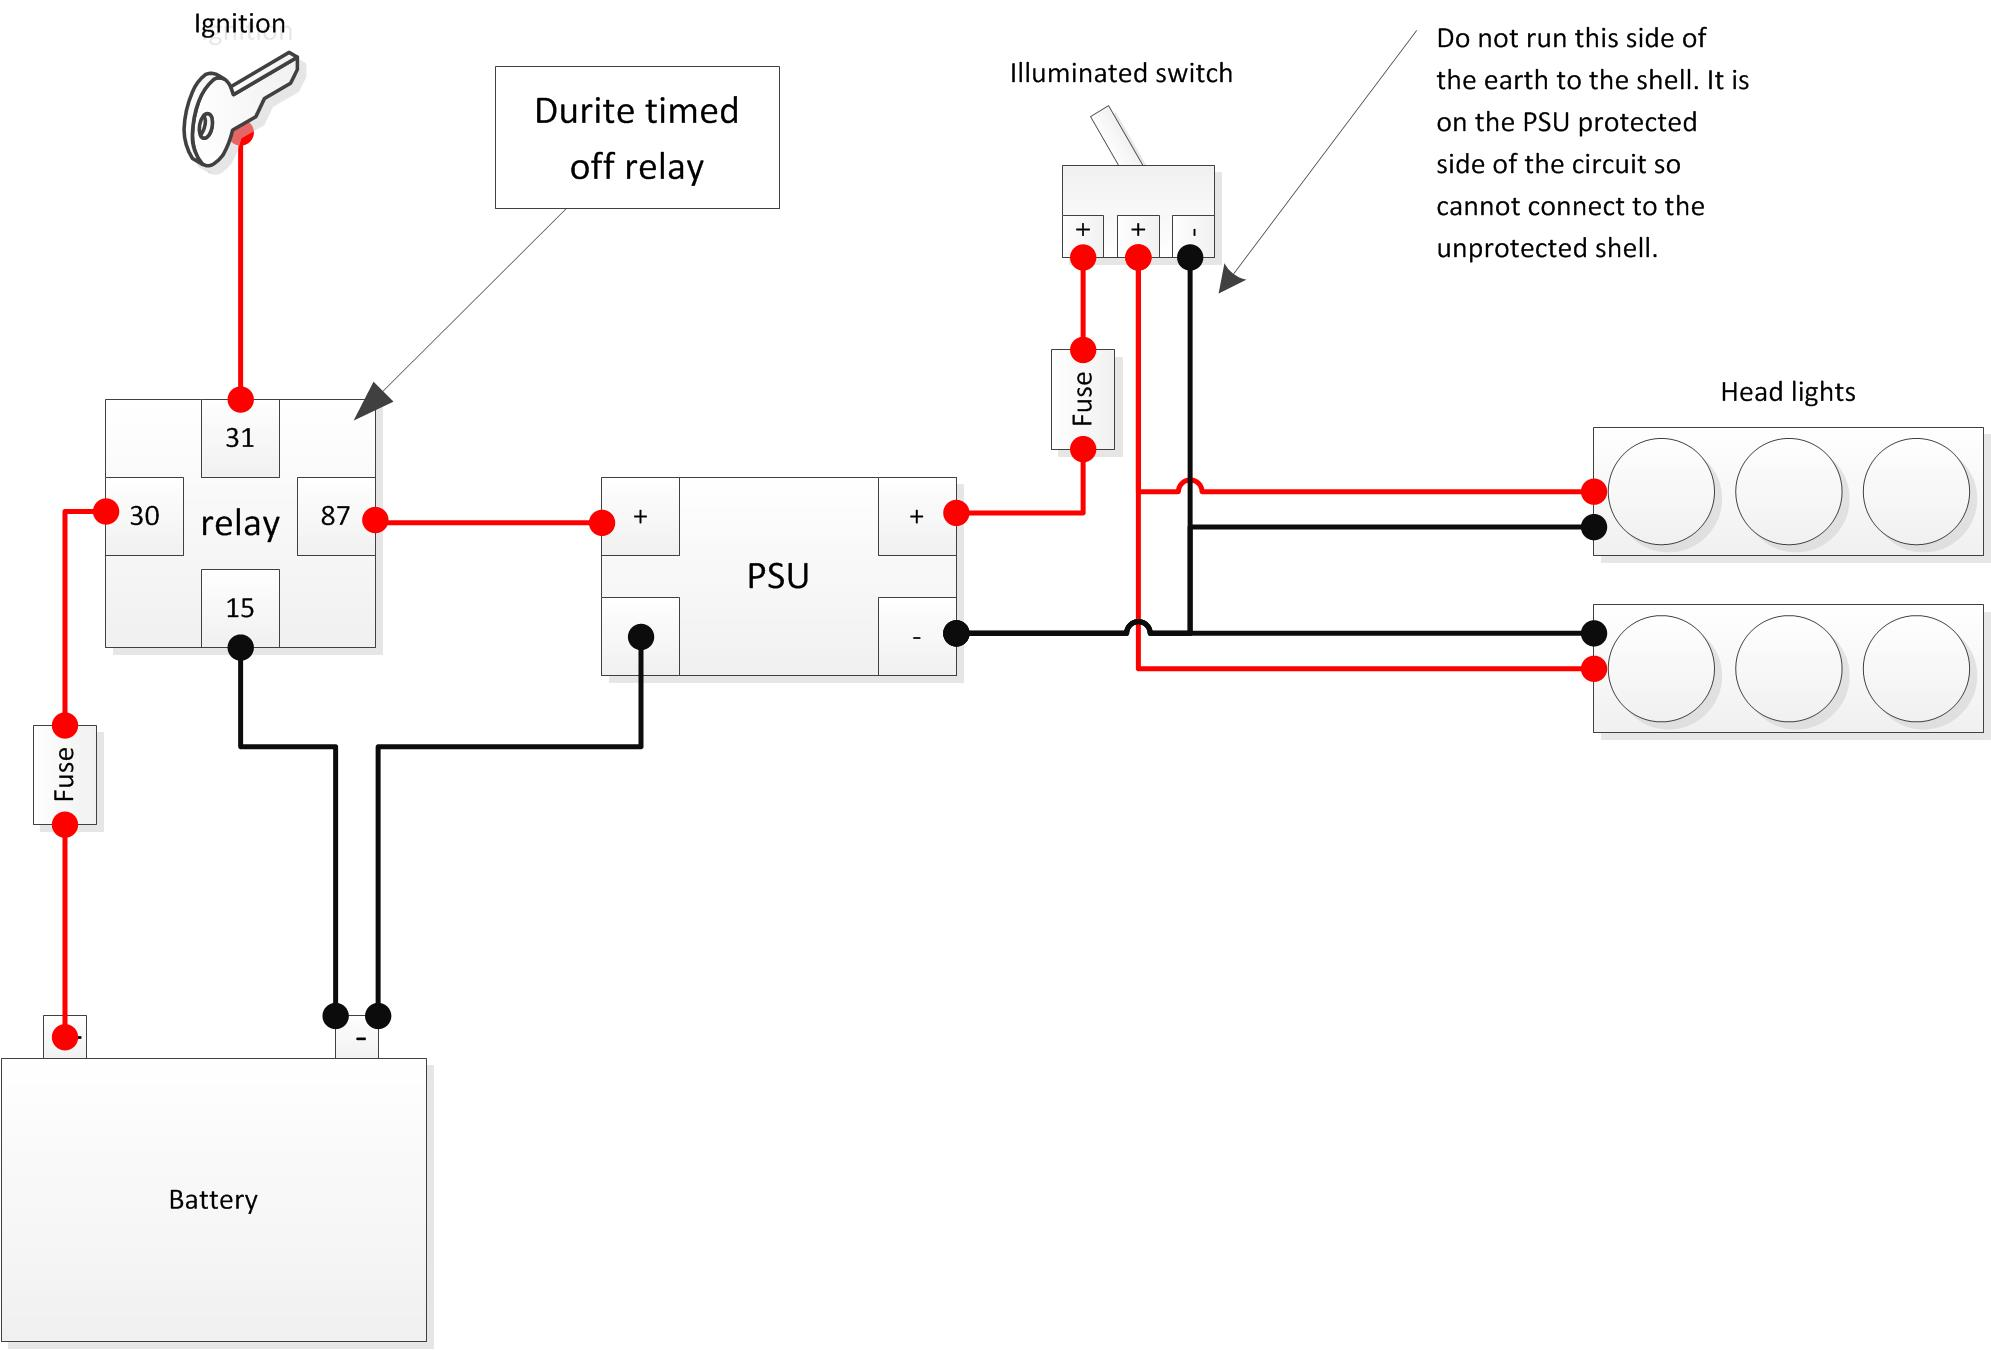 hight resolution of durite timed off relay diagram